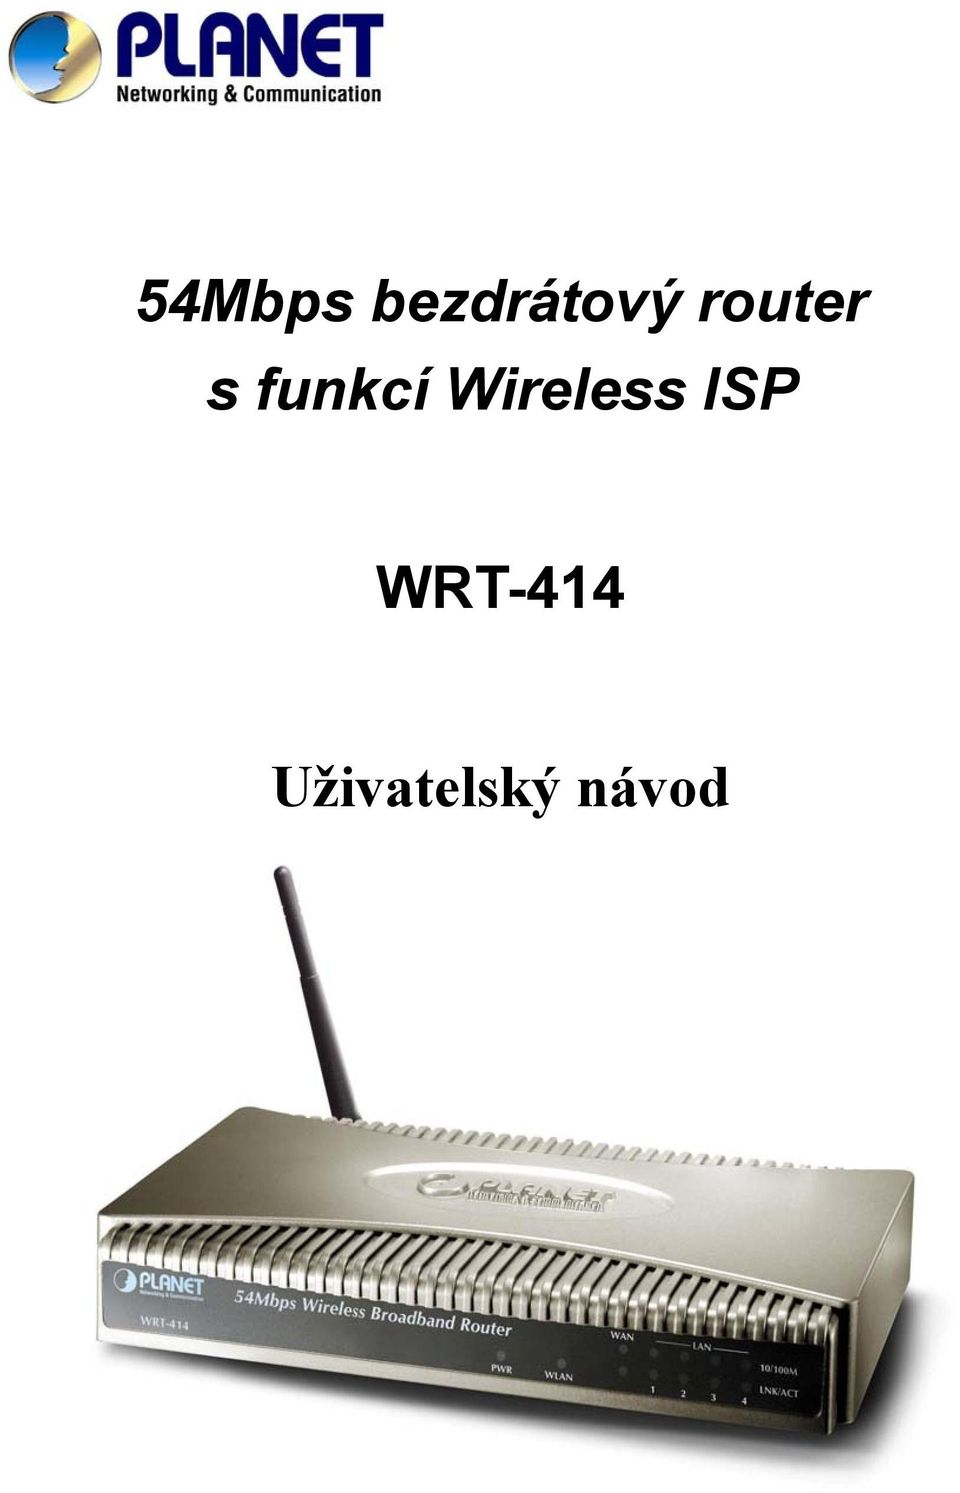 Wireless ISP